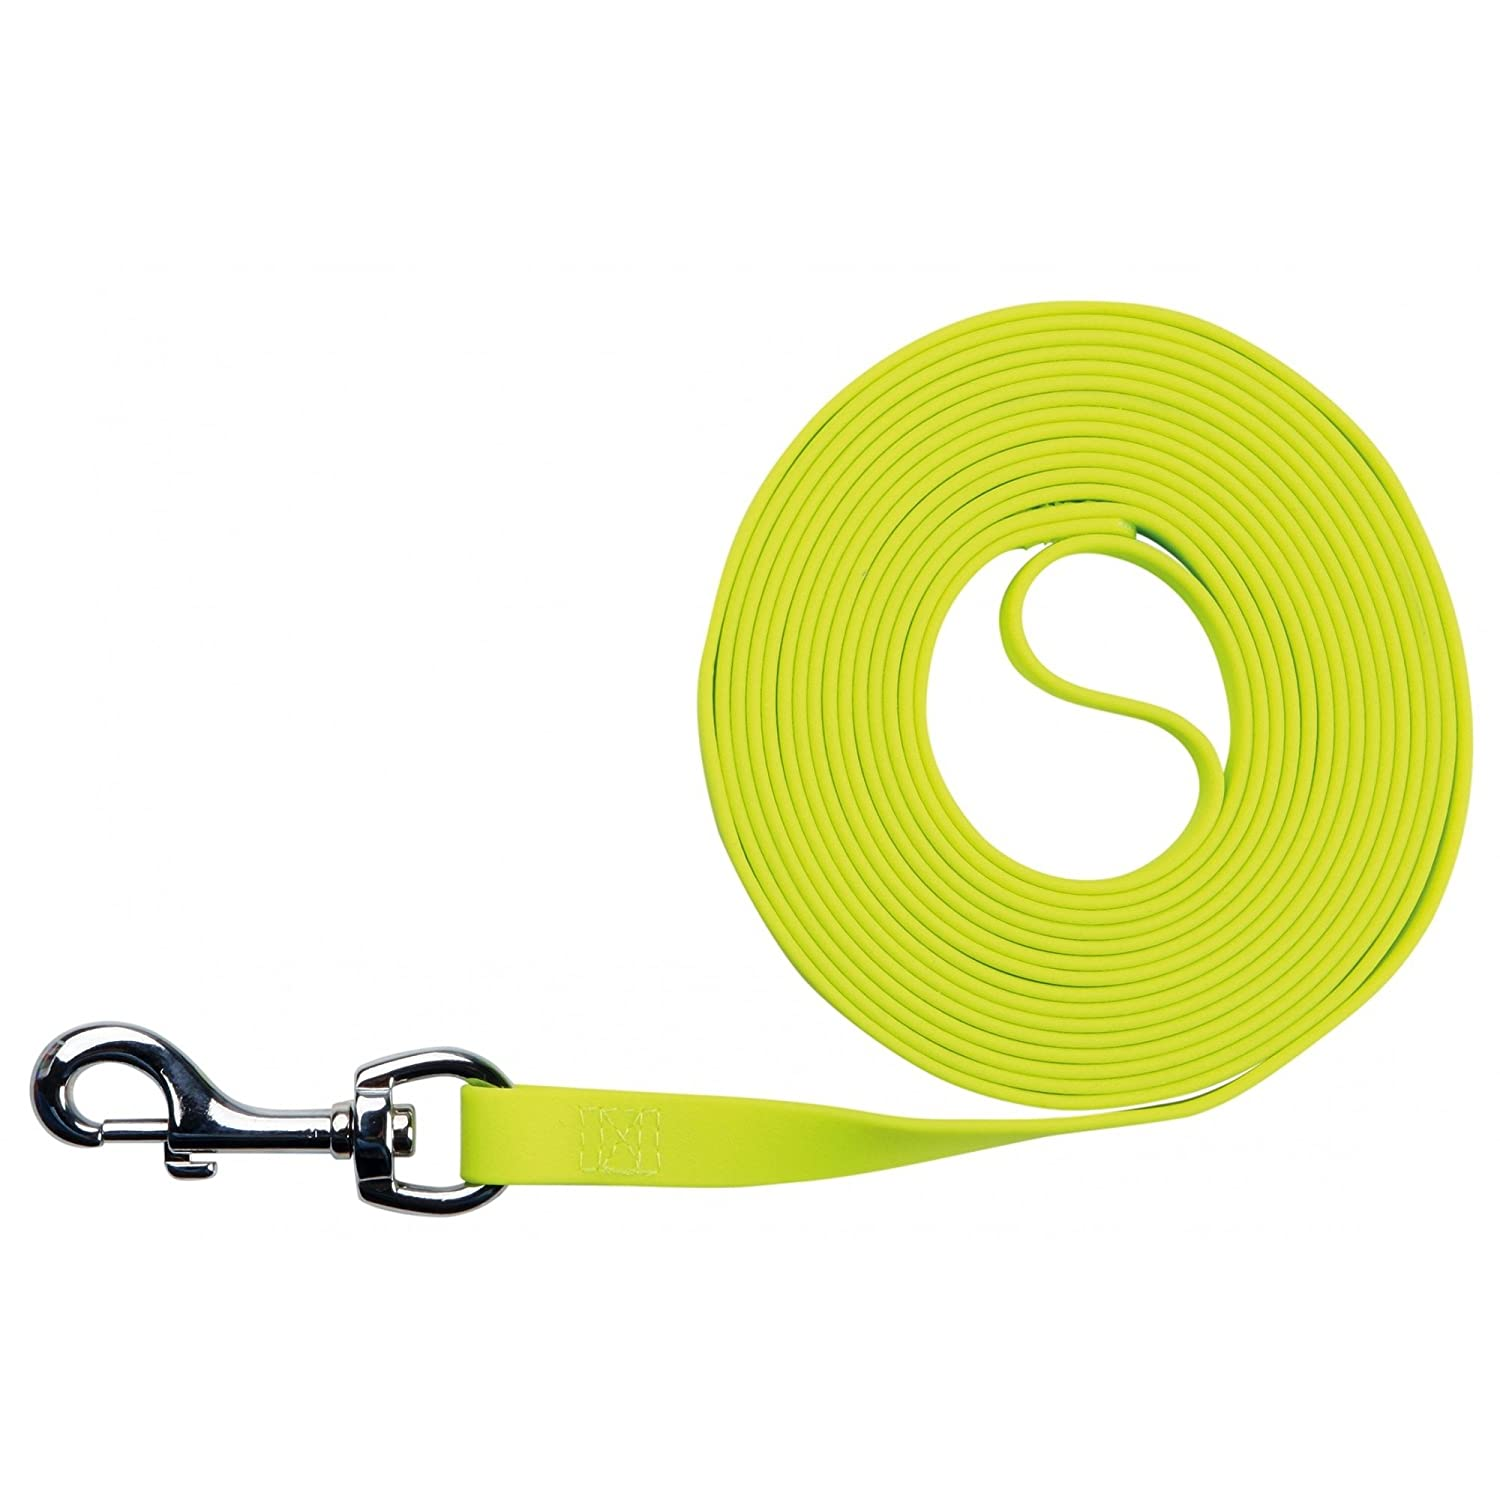 Neon Yellow 15 m x 17 mmTrixie Easy Life Tracking Dog Leash, 15 m x 17 mm, Neon Yellow